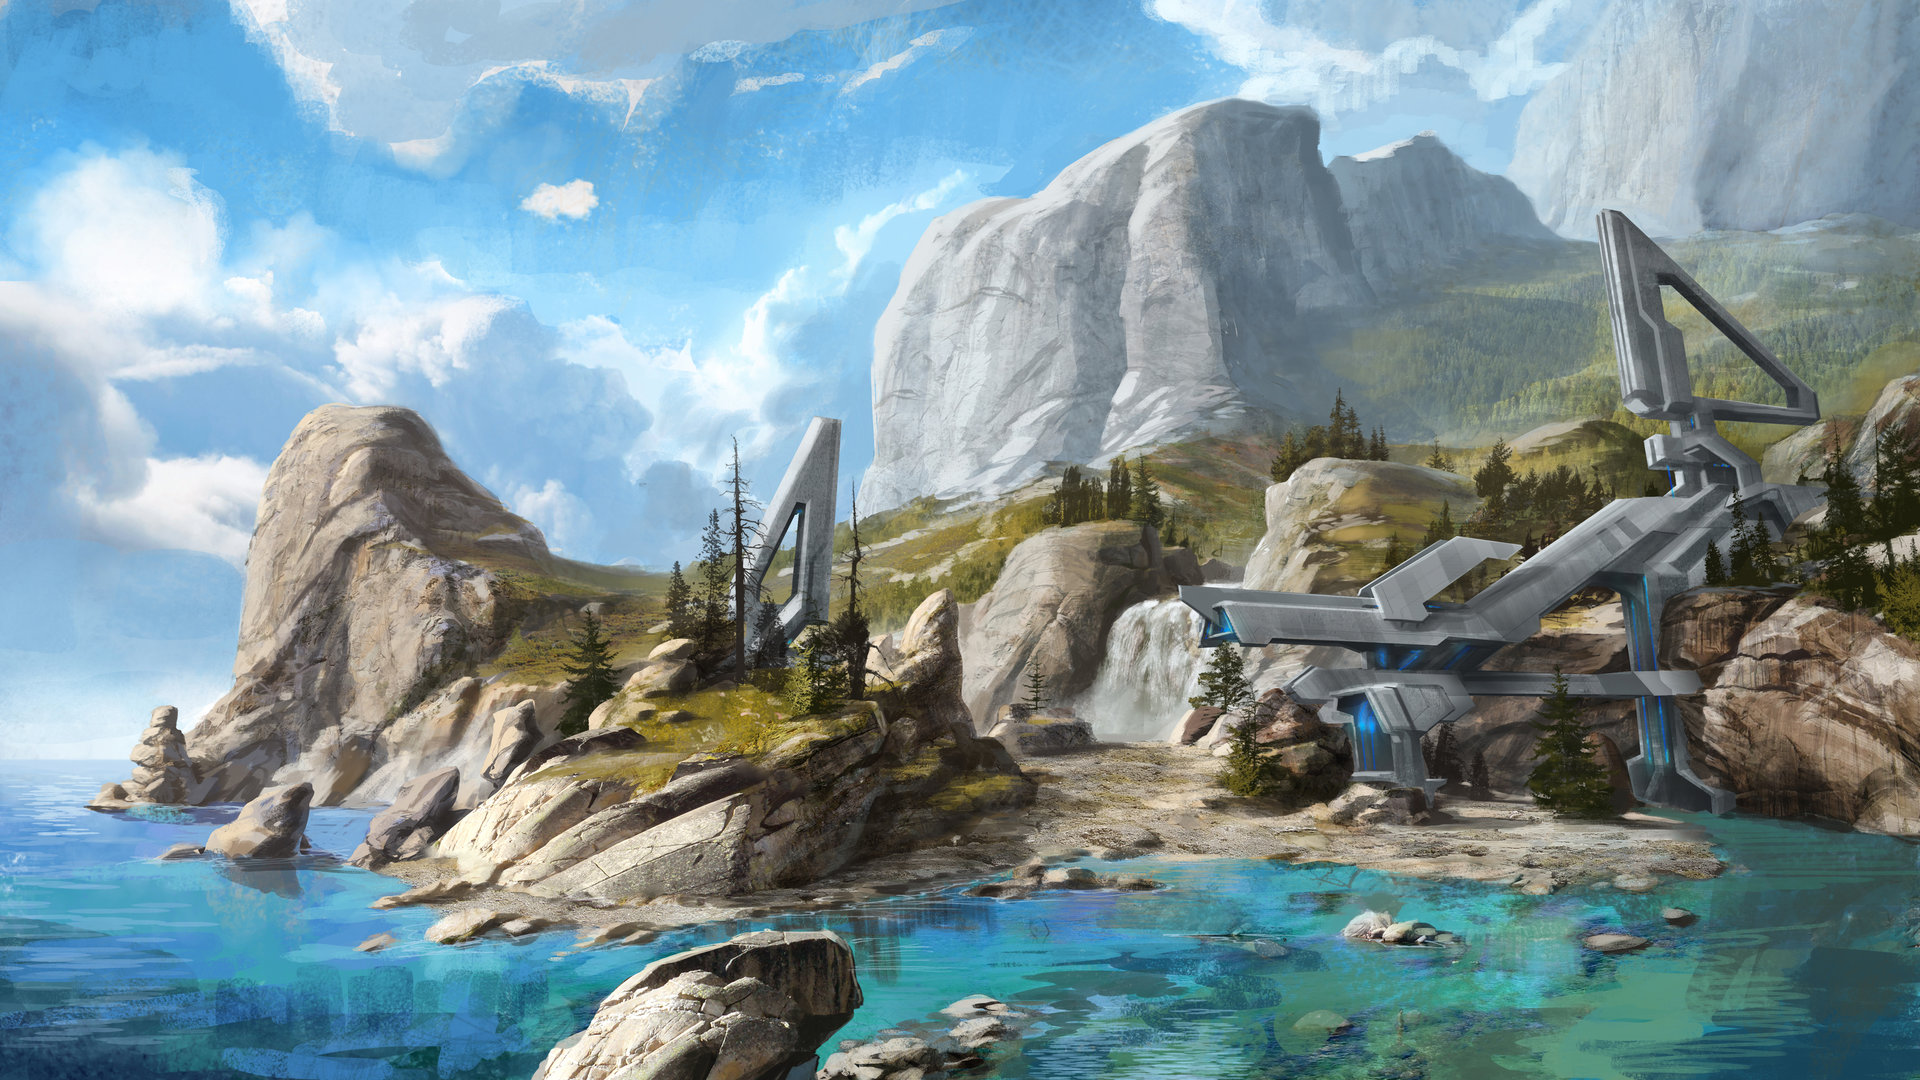 Halo Reach 3d Wallpaper Pc Artstation Halo 3 Dlc Map Concepts Isaac Hannaford